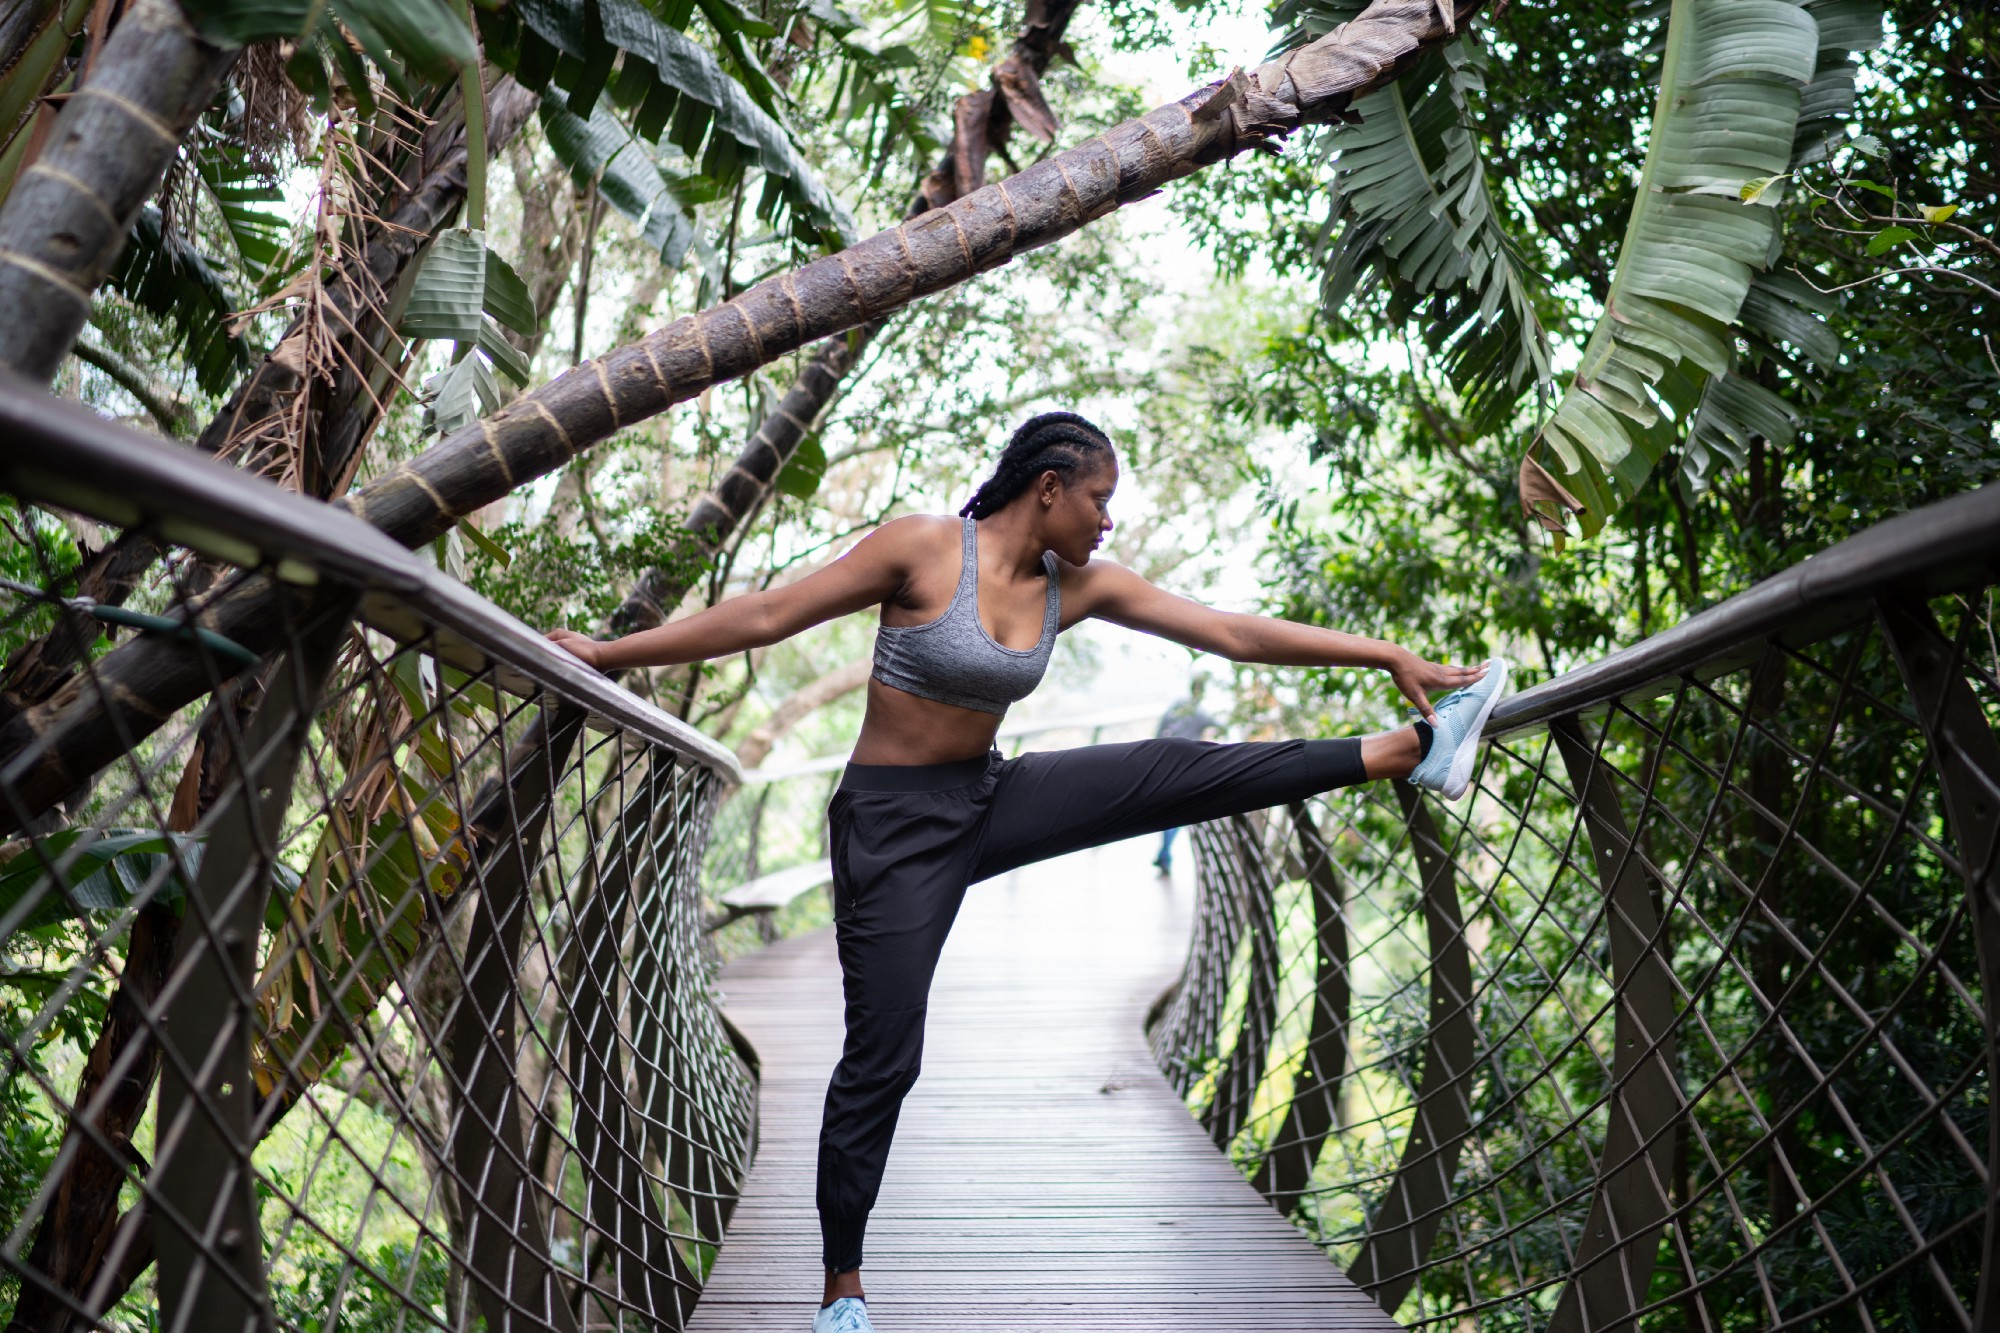 Woman stretching with leg propped up on a railing surrounded by trees